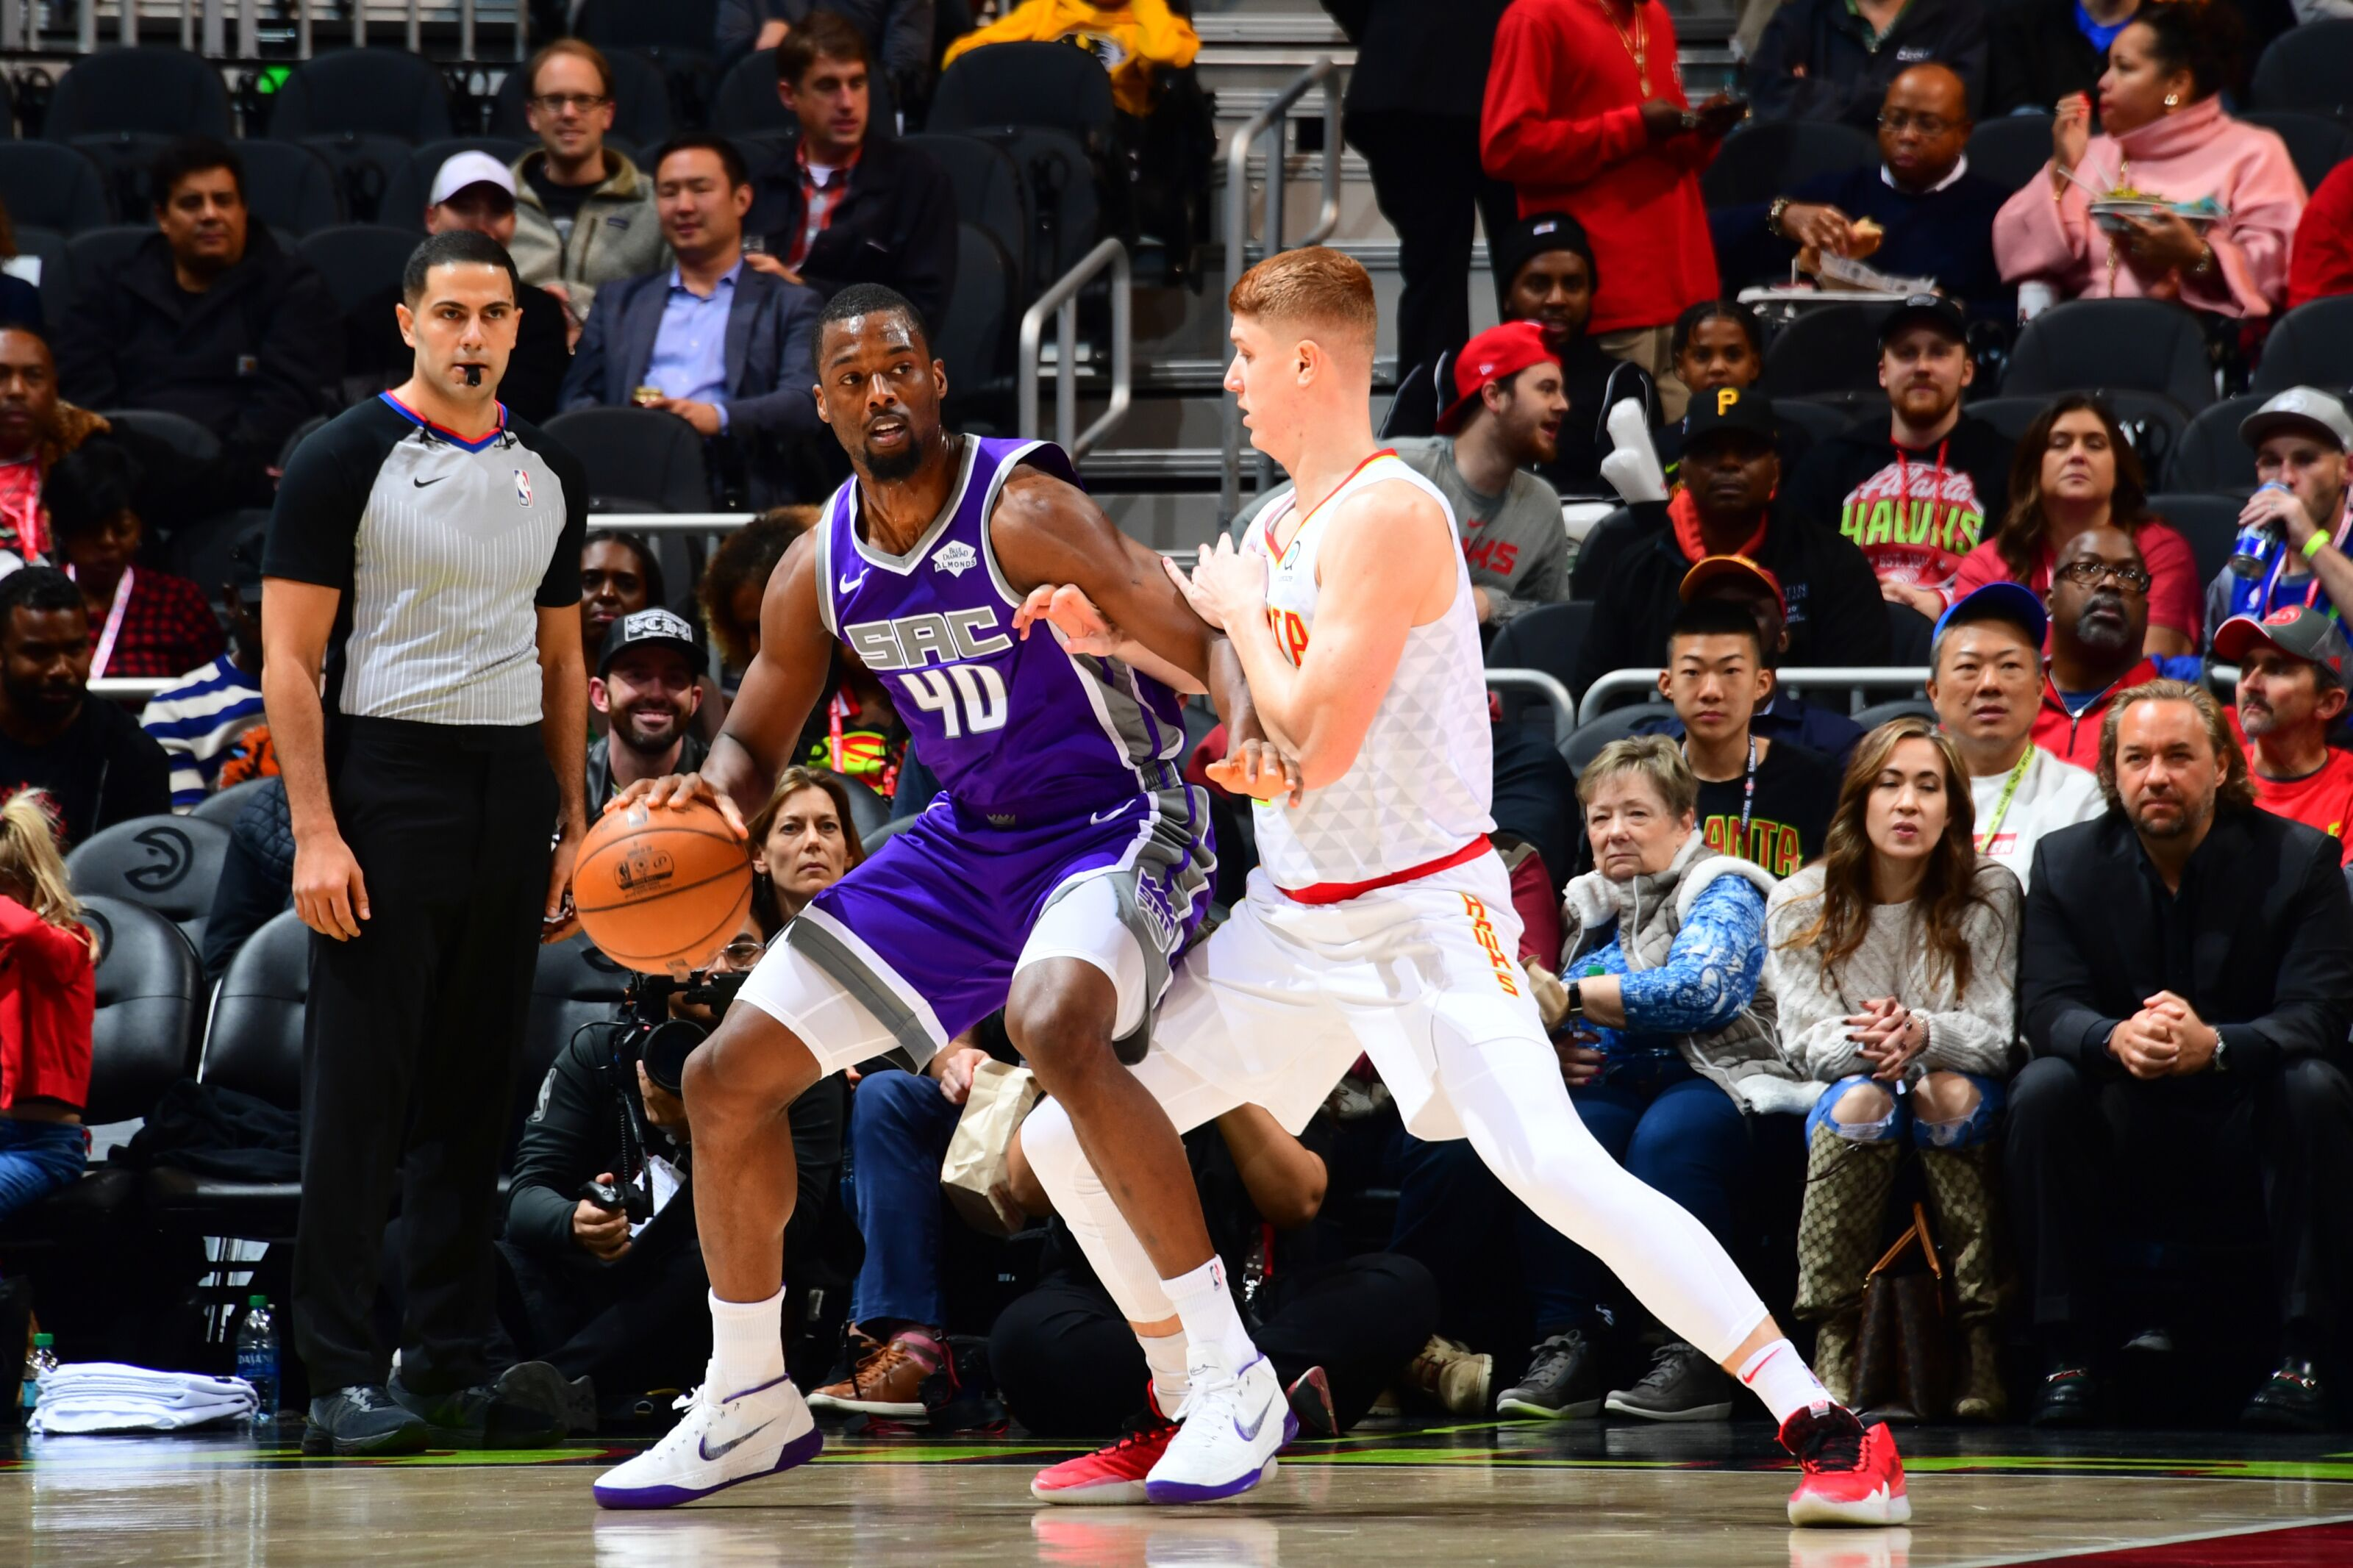 Sacramento ends the road trip with a win in Atlanta